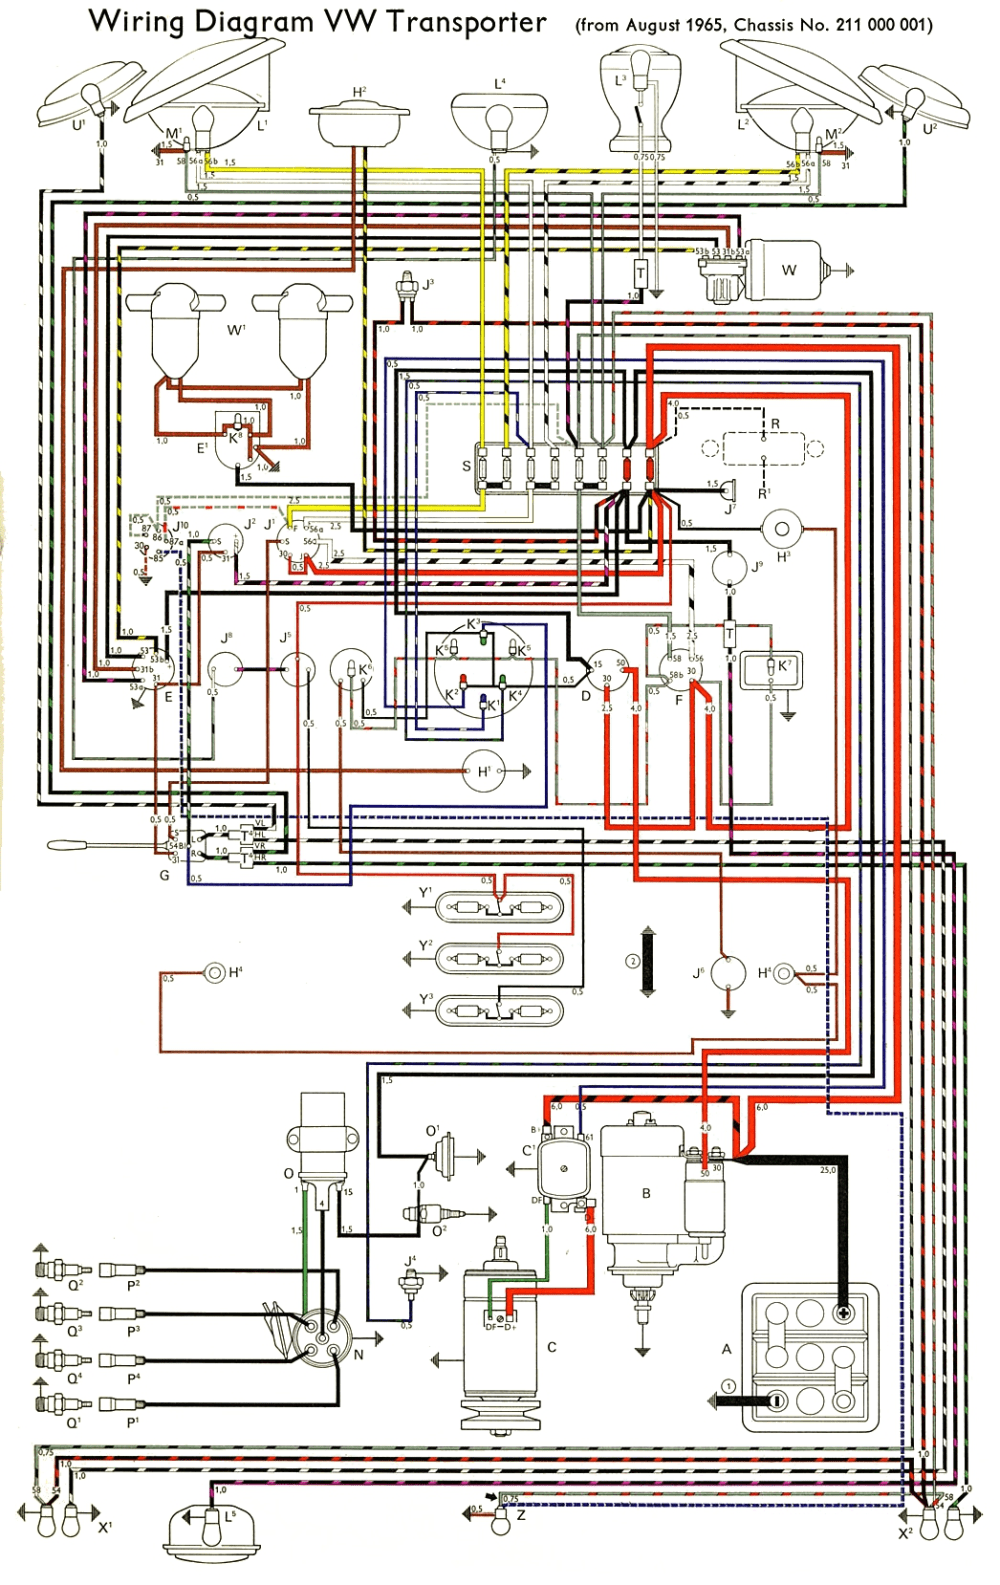 medium resolution of thesamba com type 2 wiring diagrams rh thesamba com 69 vw wiring diagram 56 vw bug